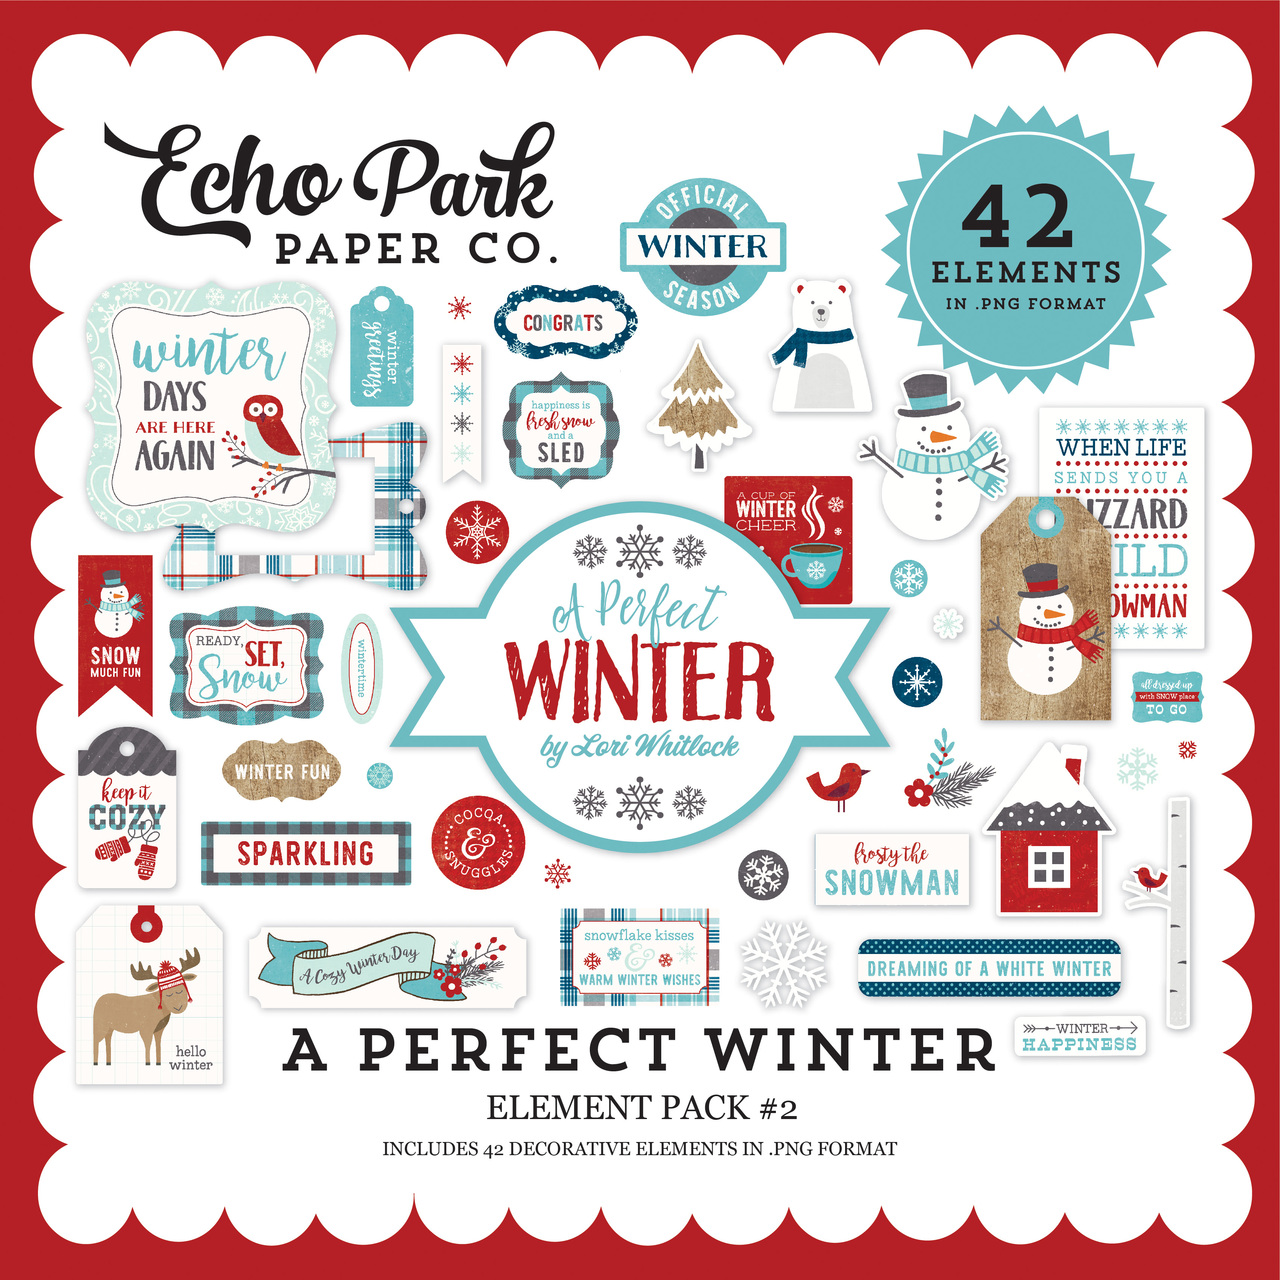 A Perfect Winter Element Pack #2